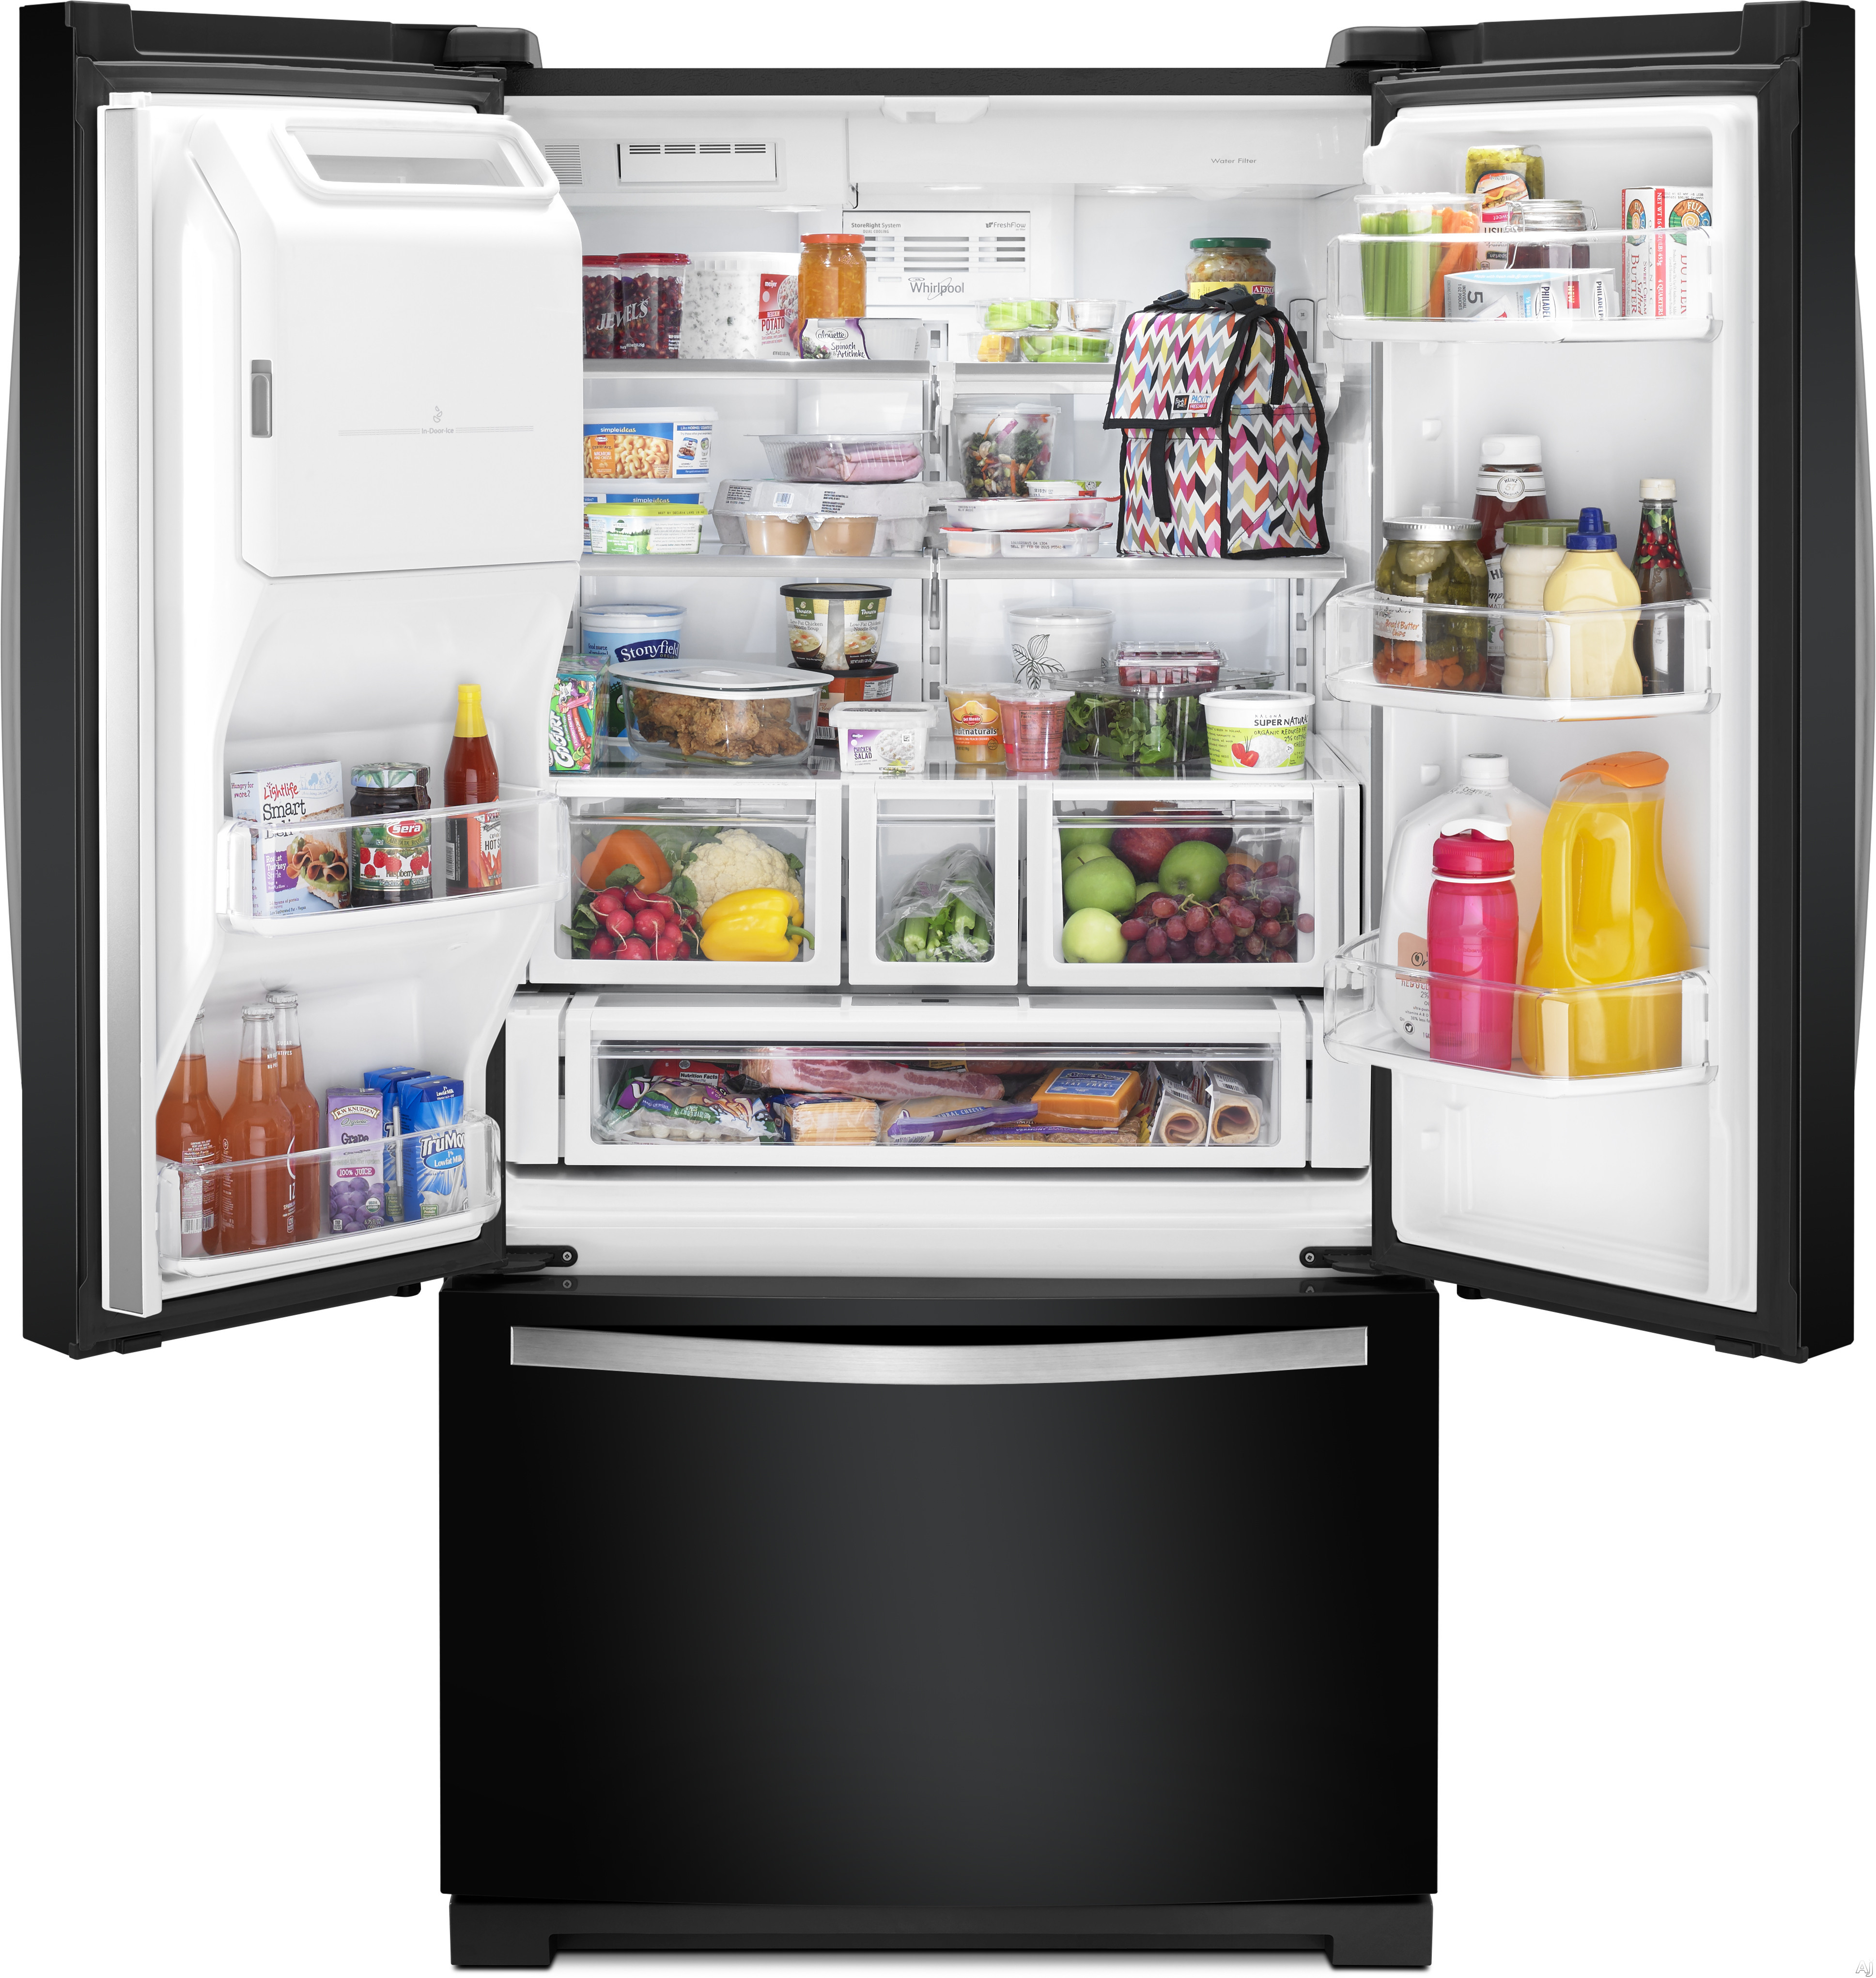 #B39318 Whirlpool WRF757SDEE 26.8 Cu. Ft. French Door Refrigerator  Most Effective 11255 Brandsmart Air Conditioners pictures with 3873x4083 px on helpvideos.info - Air Conditioners, Air Coolers and more